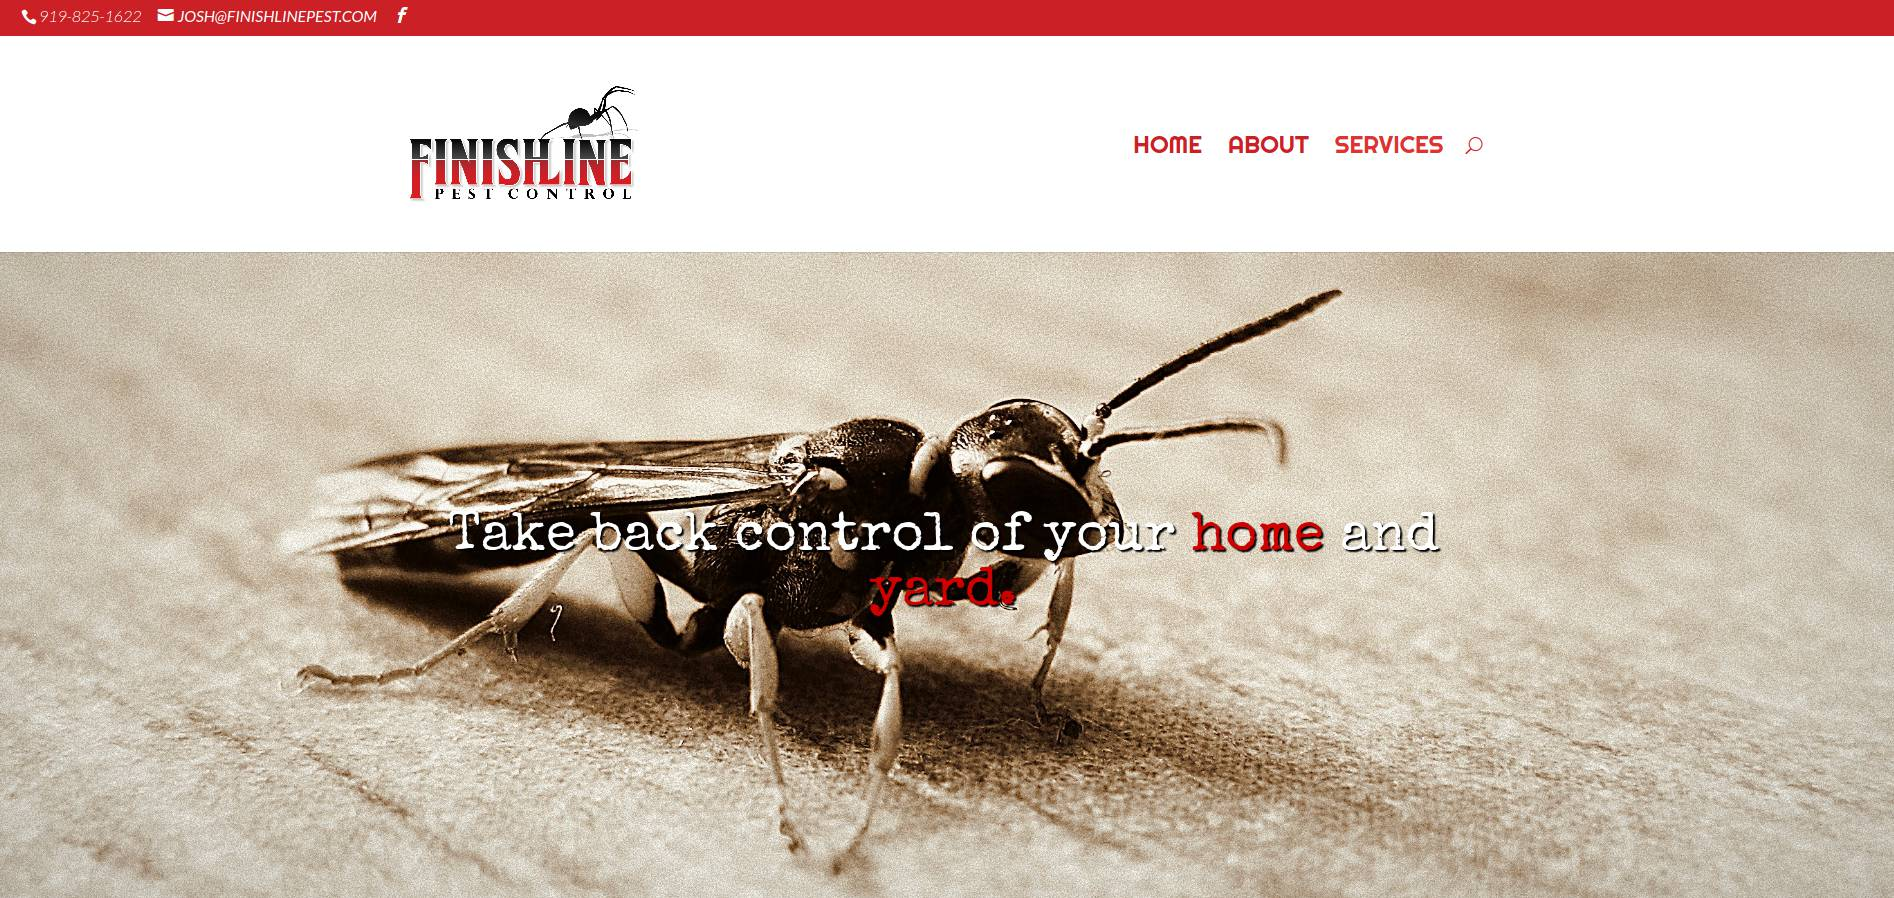 finish-line-pest-control-durham-nc-services